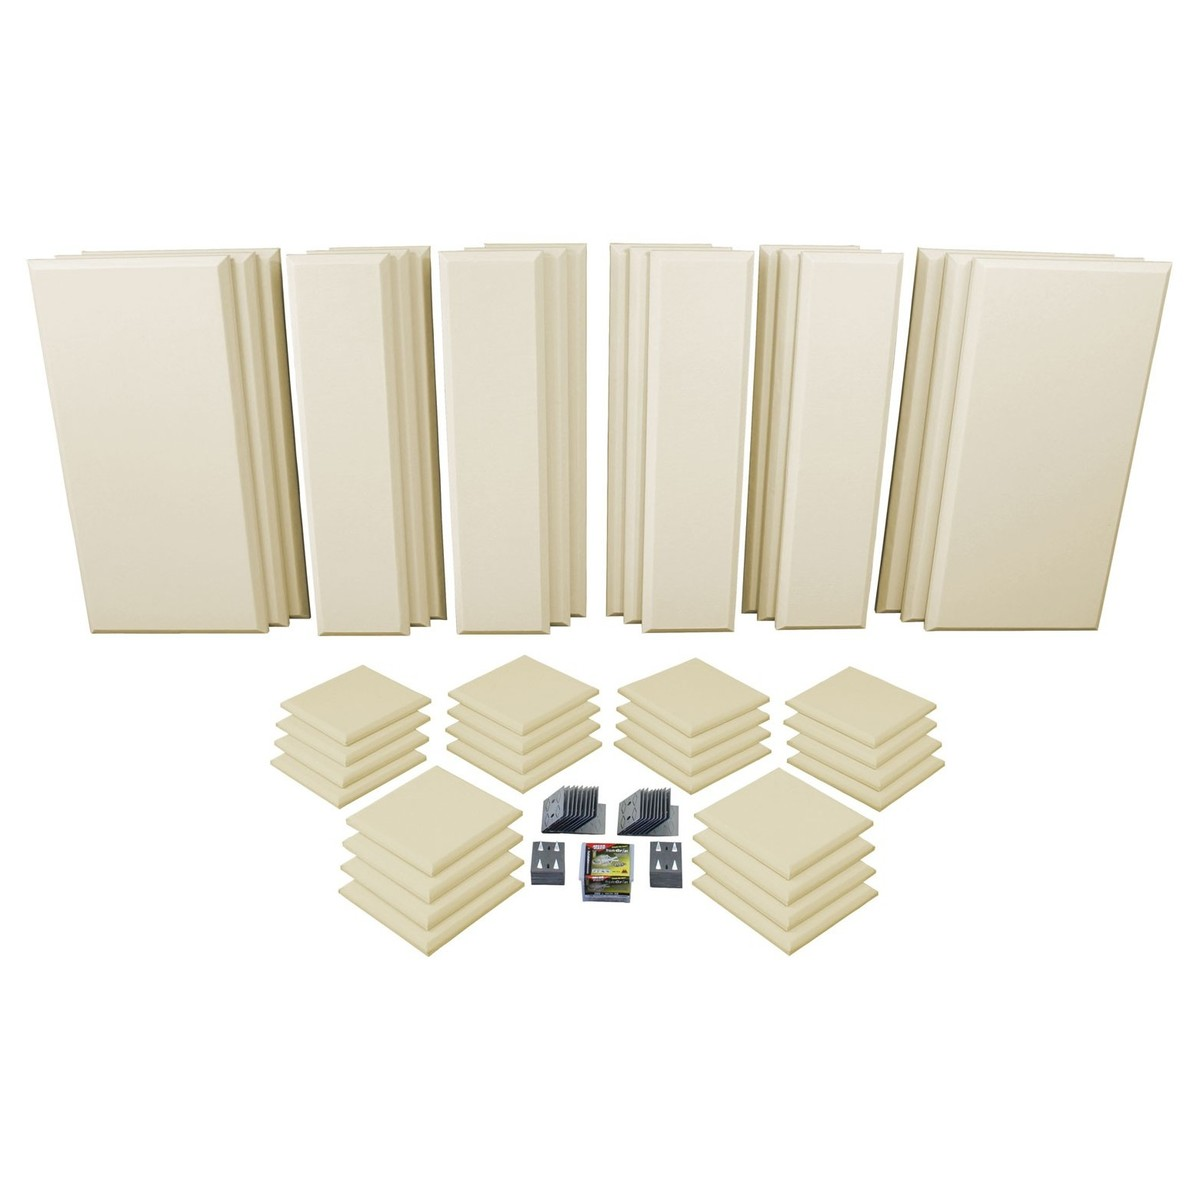 Click to view product details and reviews for Primacoustic London 16 Room Kit In Beige.